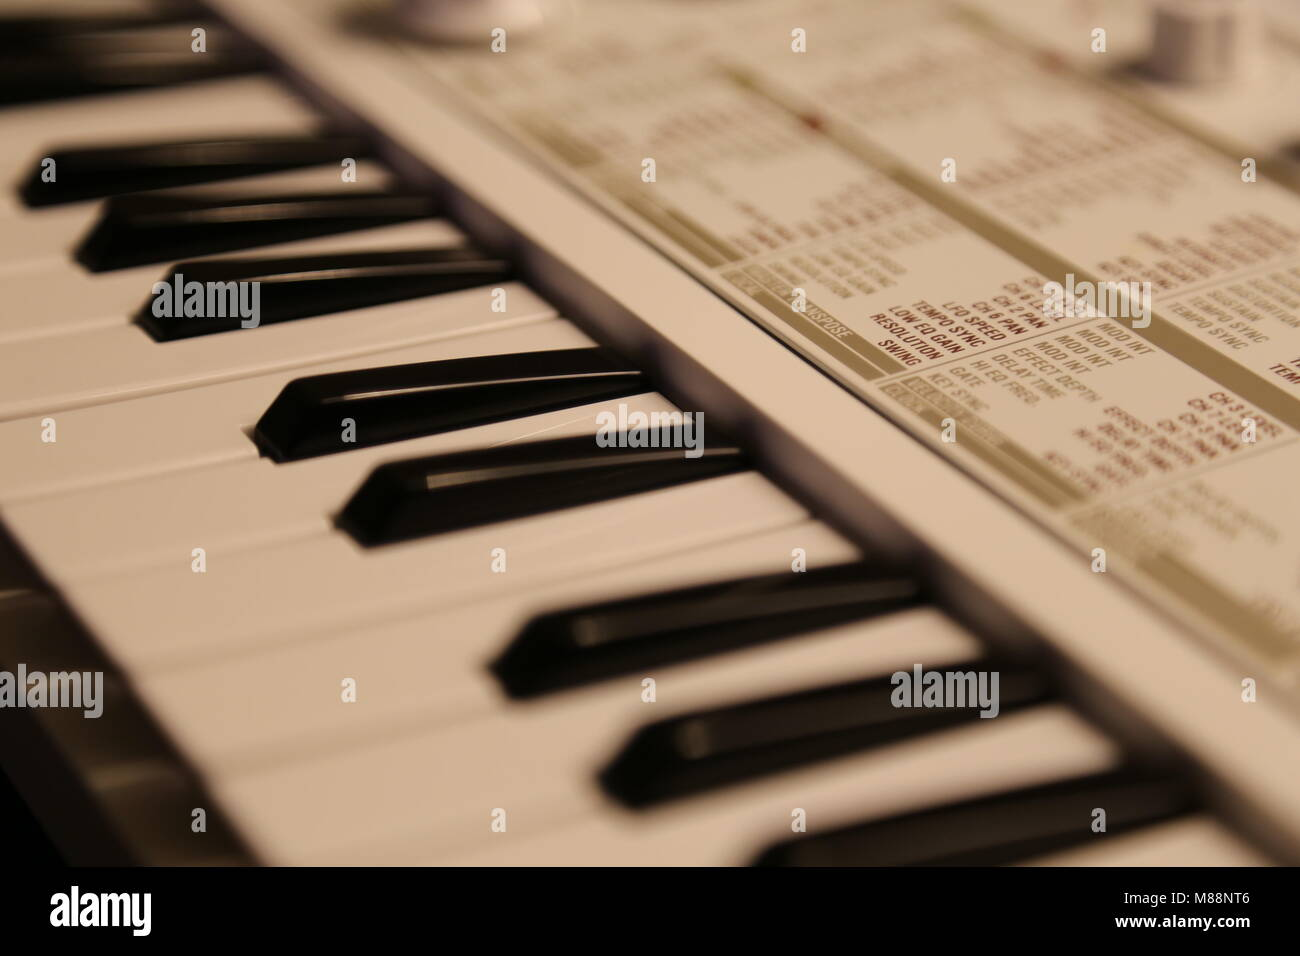 Korg Microkorg S Synthesizer - Stock Image